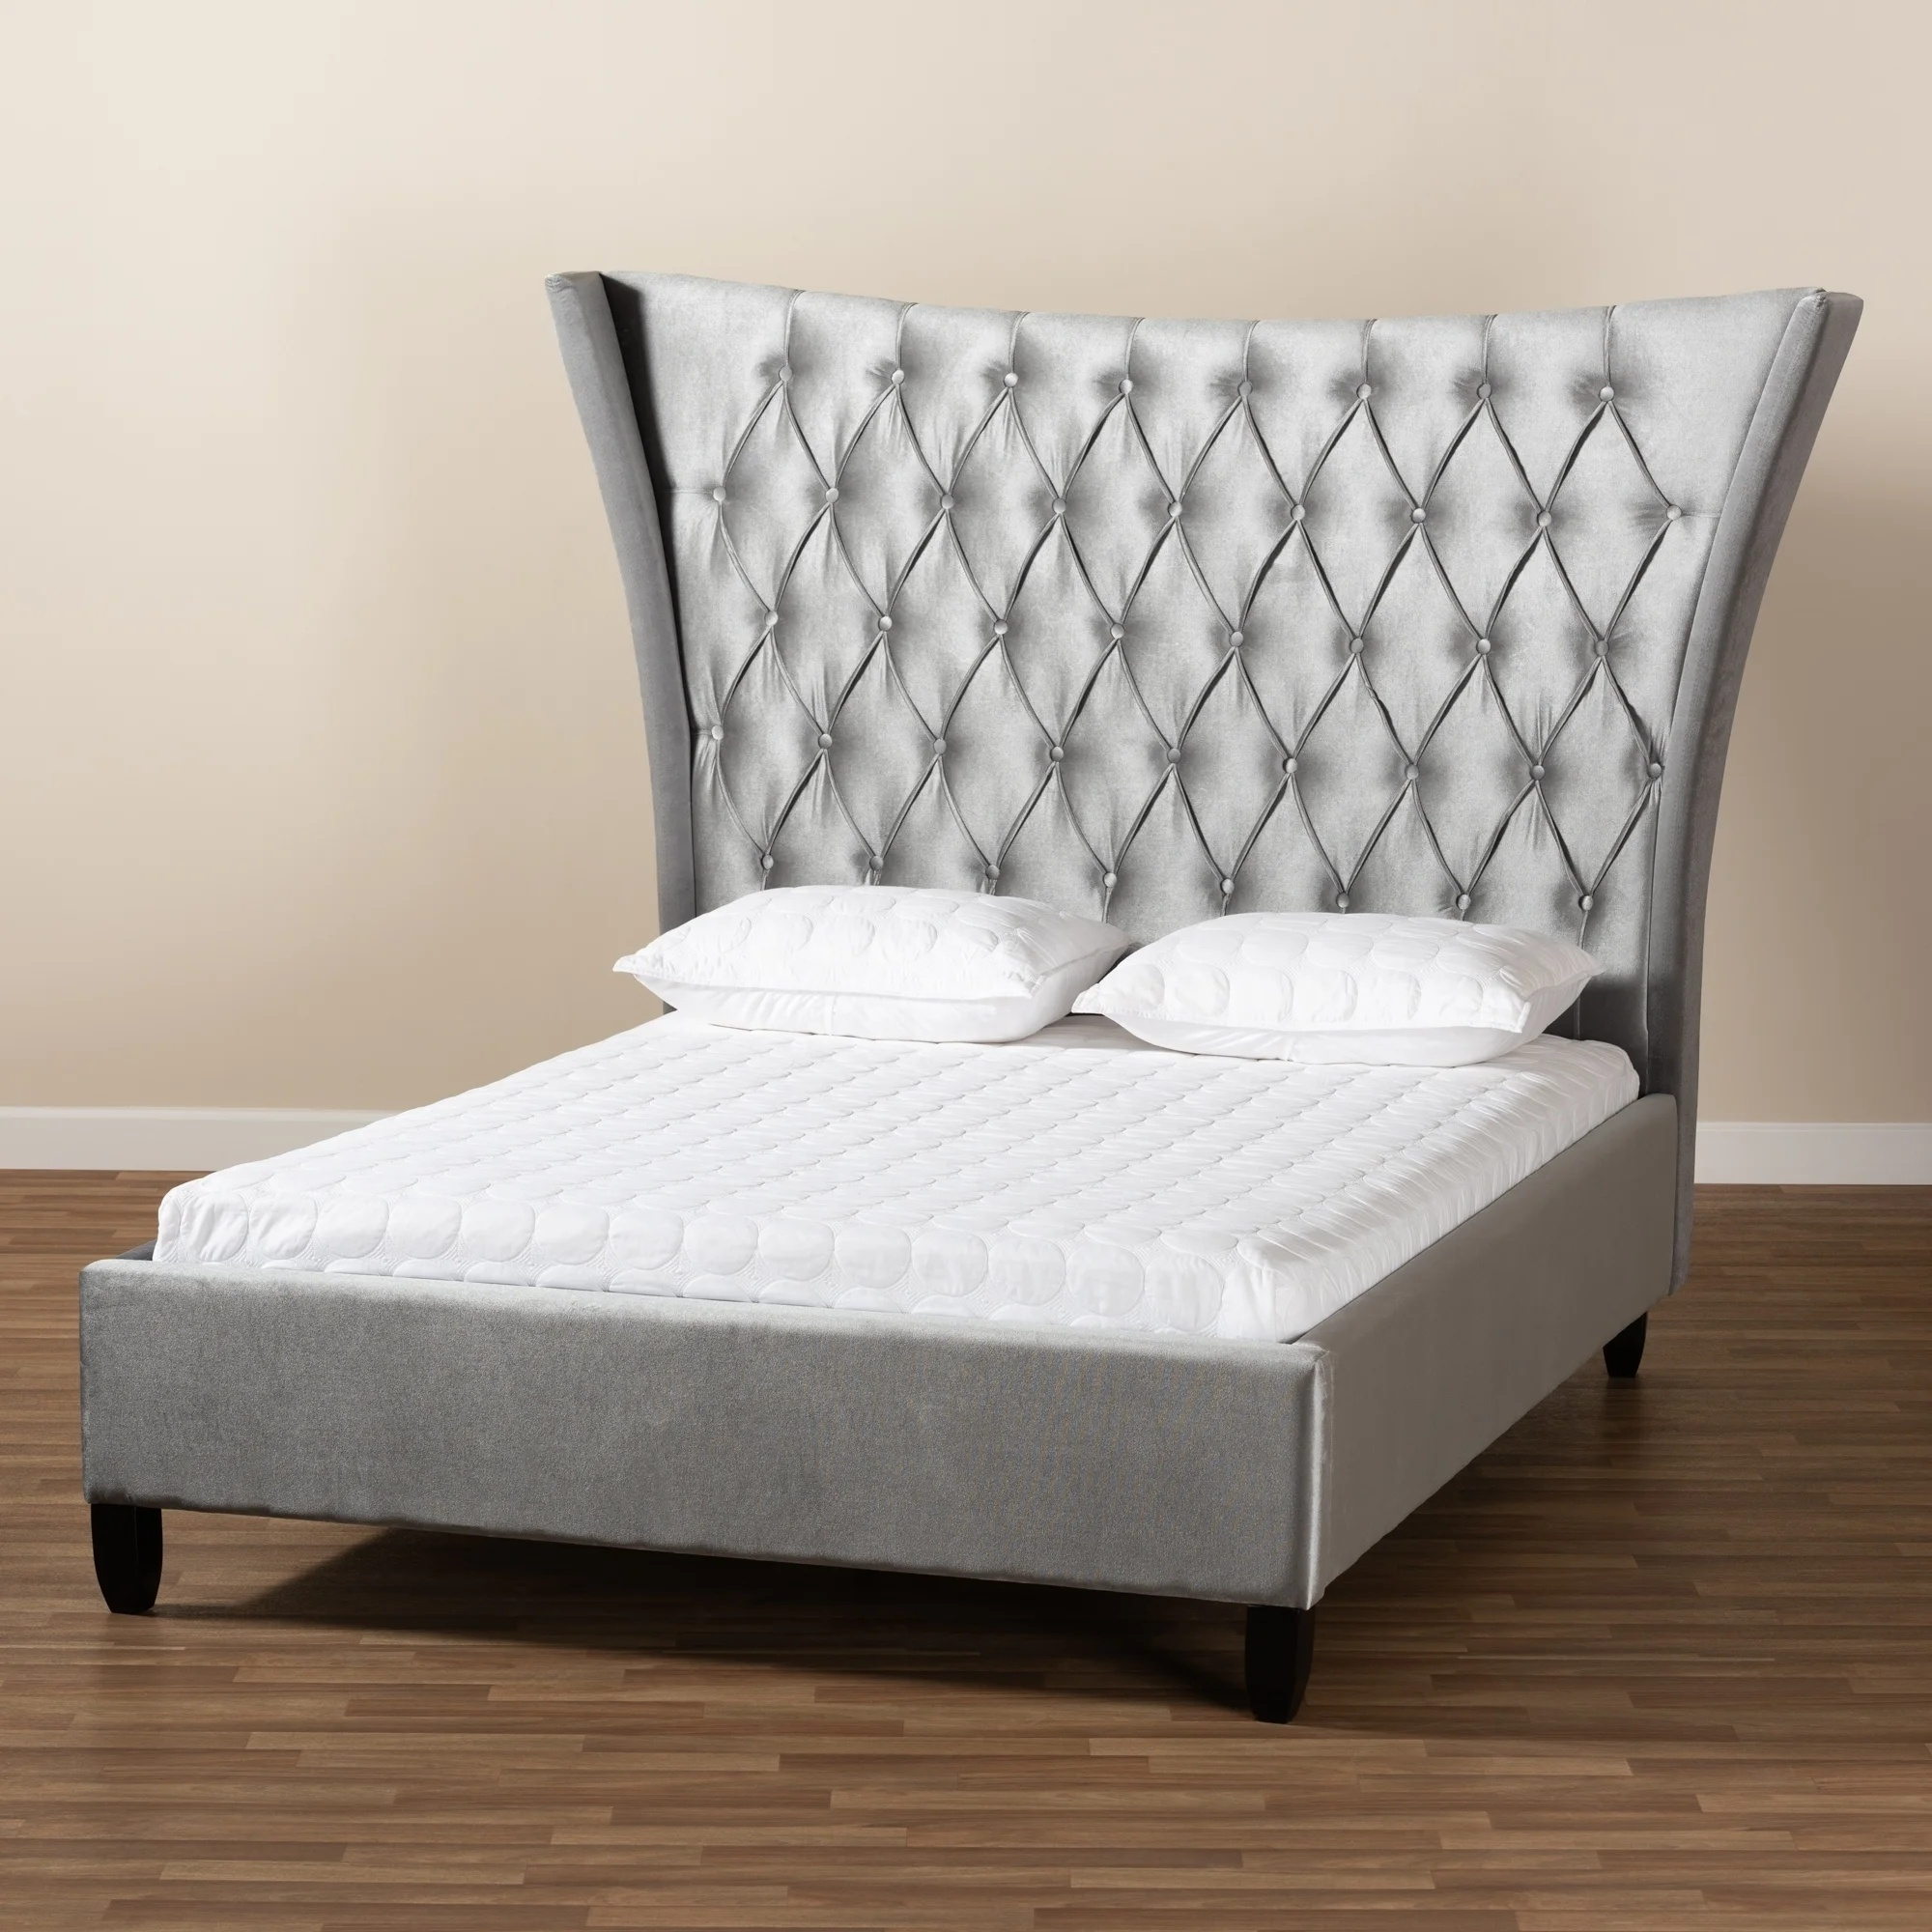 2019 Latest Grey Luxury King Size Upholstery Bed